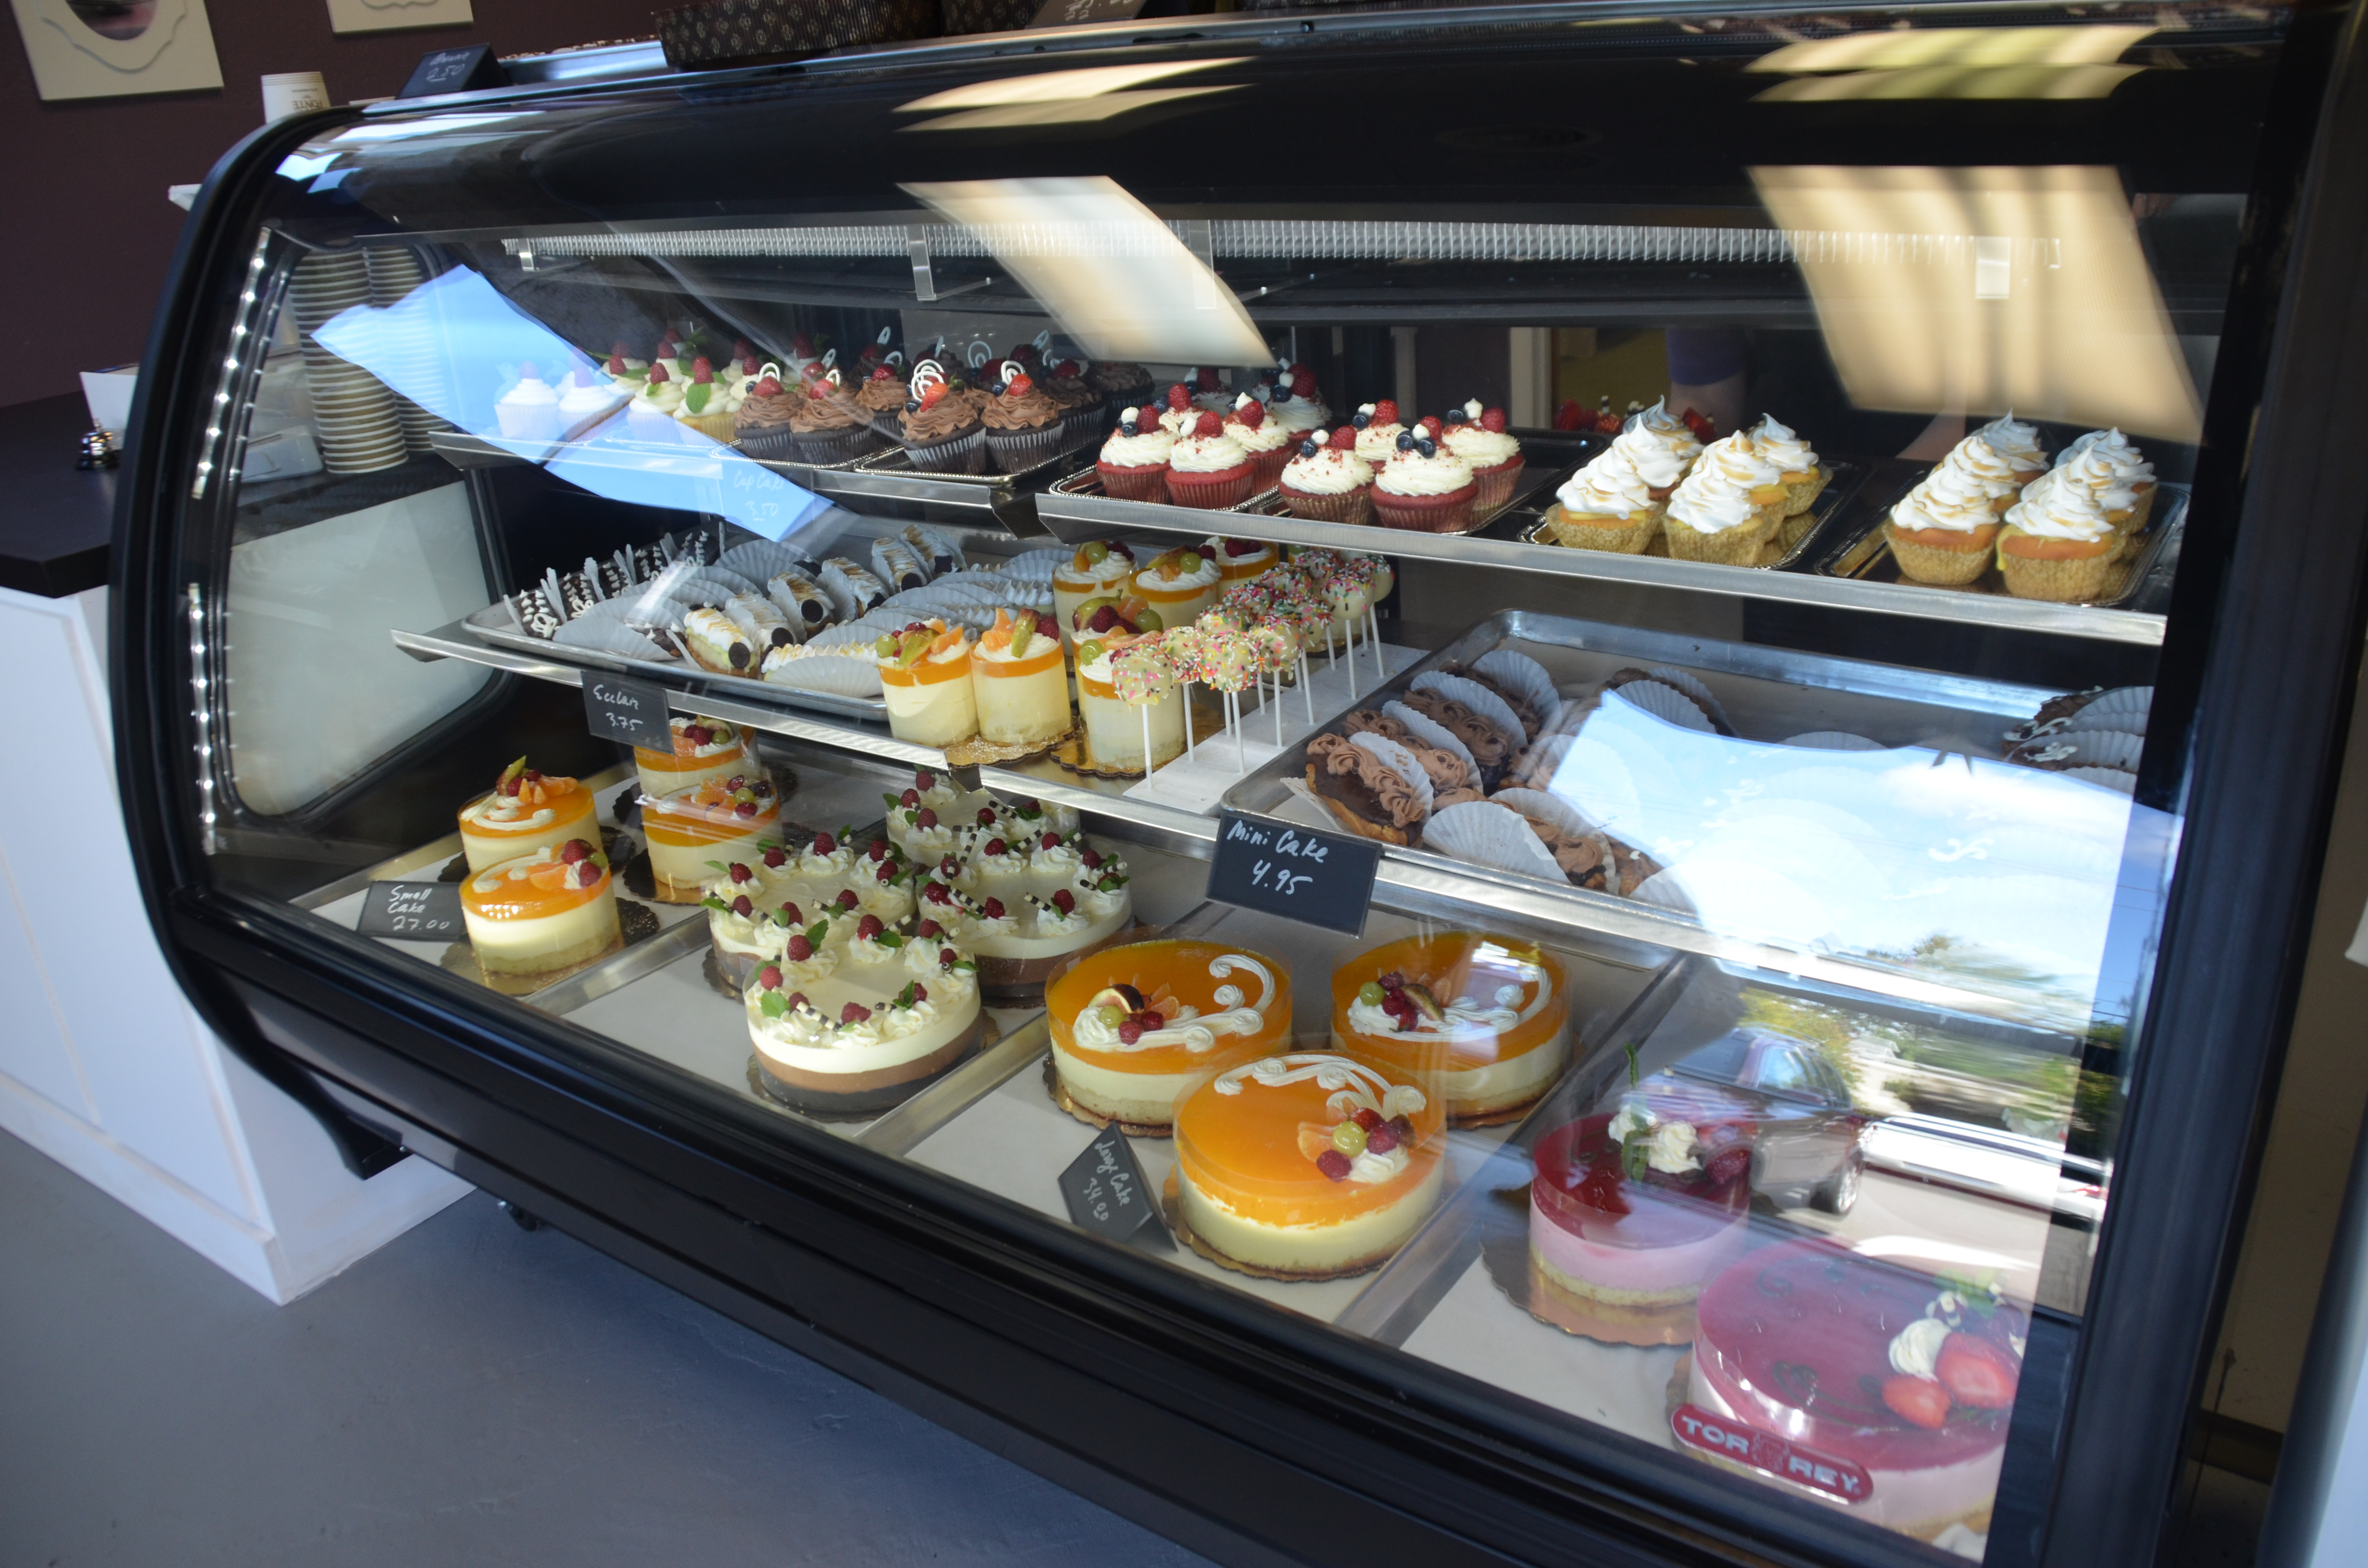 The Display Case Full Of Cakes Cake Pops Cupcakes And Eclairs During Crema De La Cremas Opening On Saturday